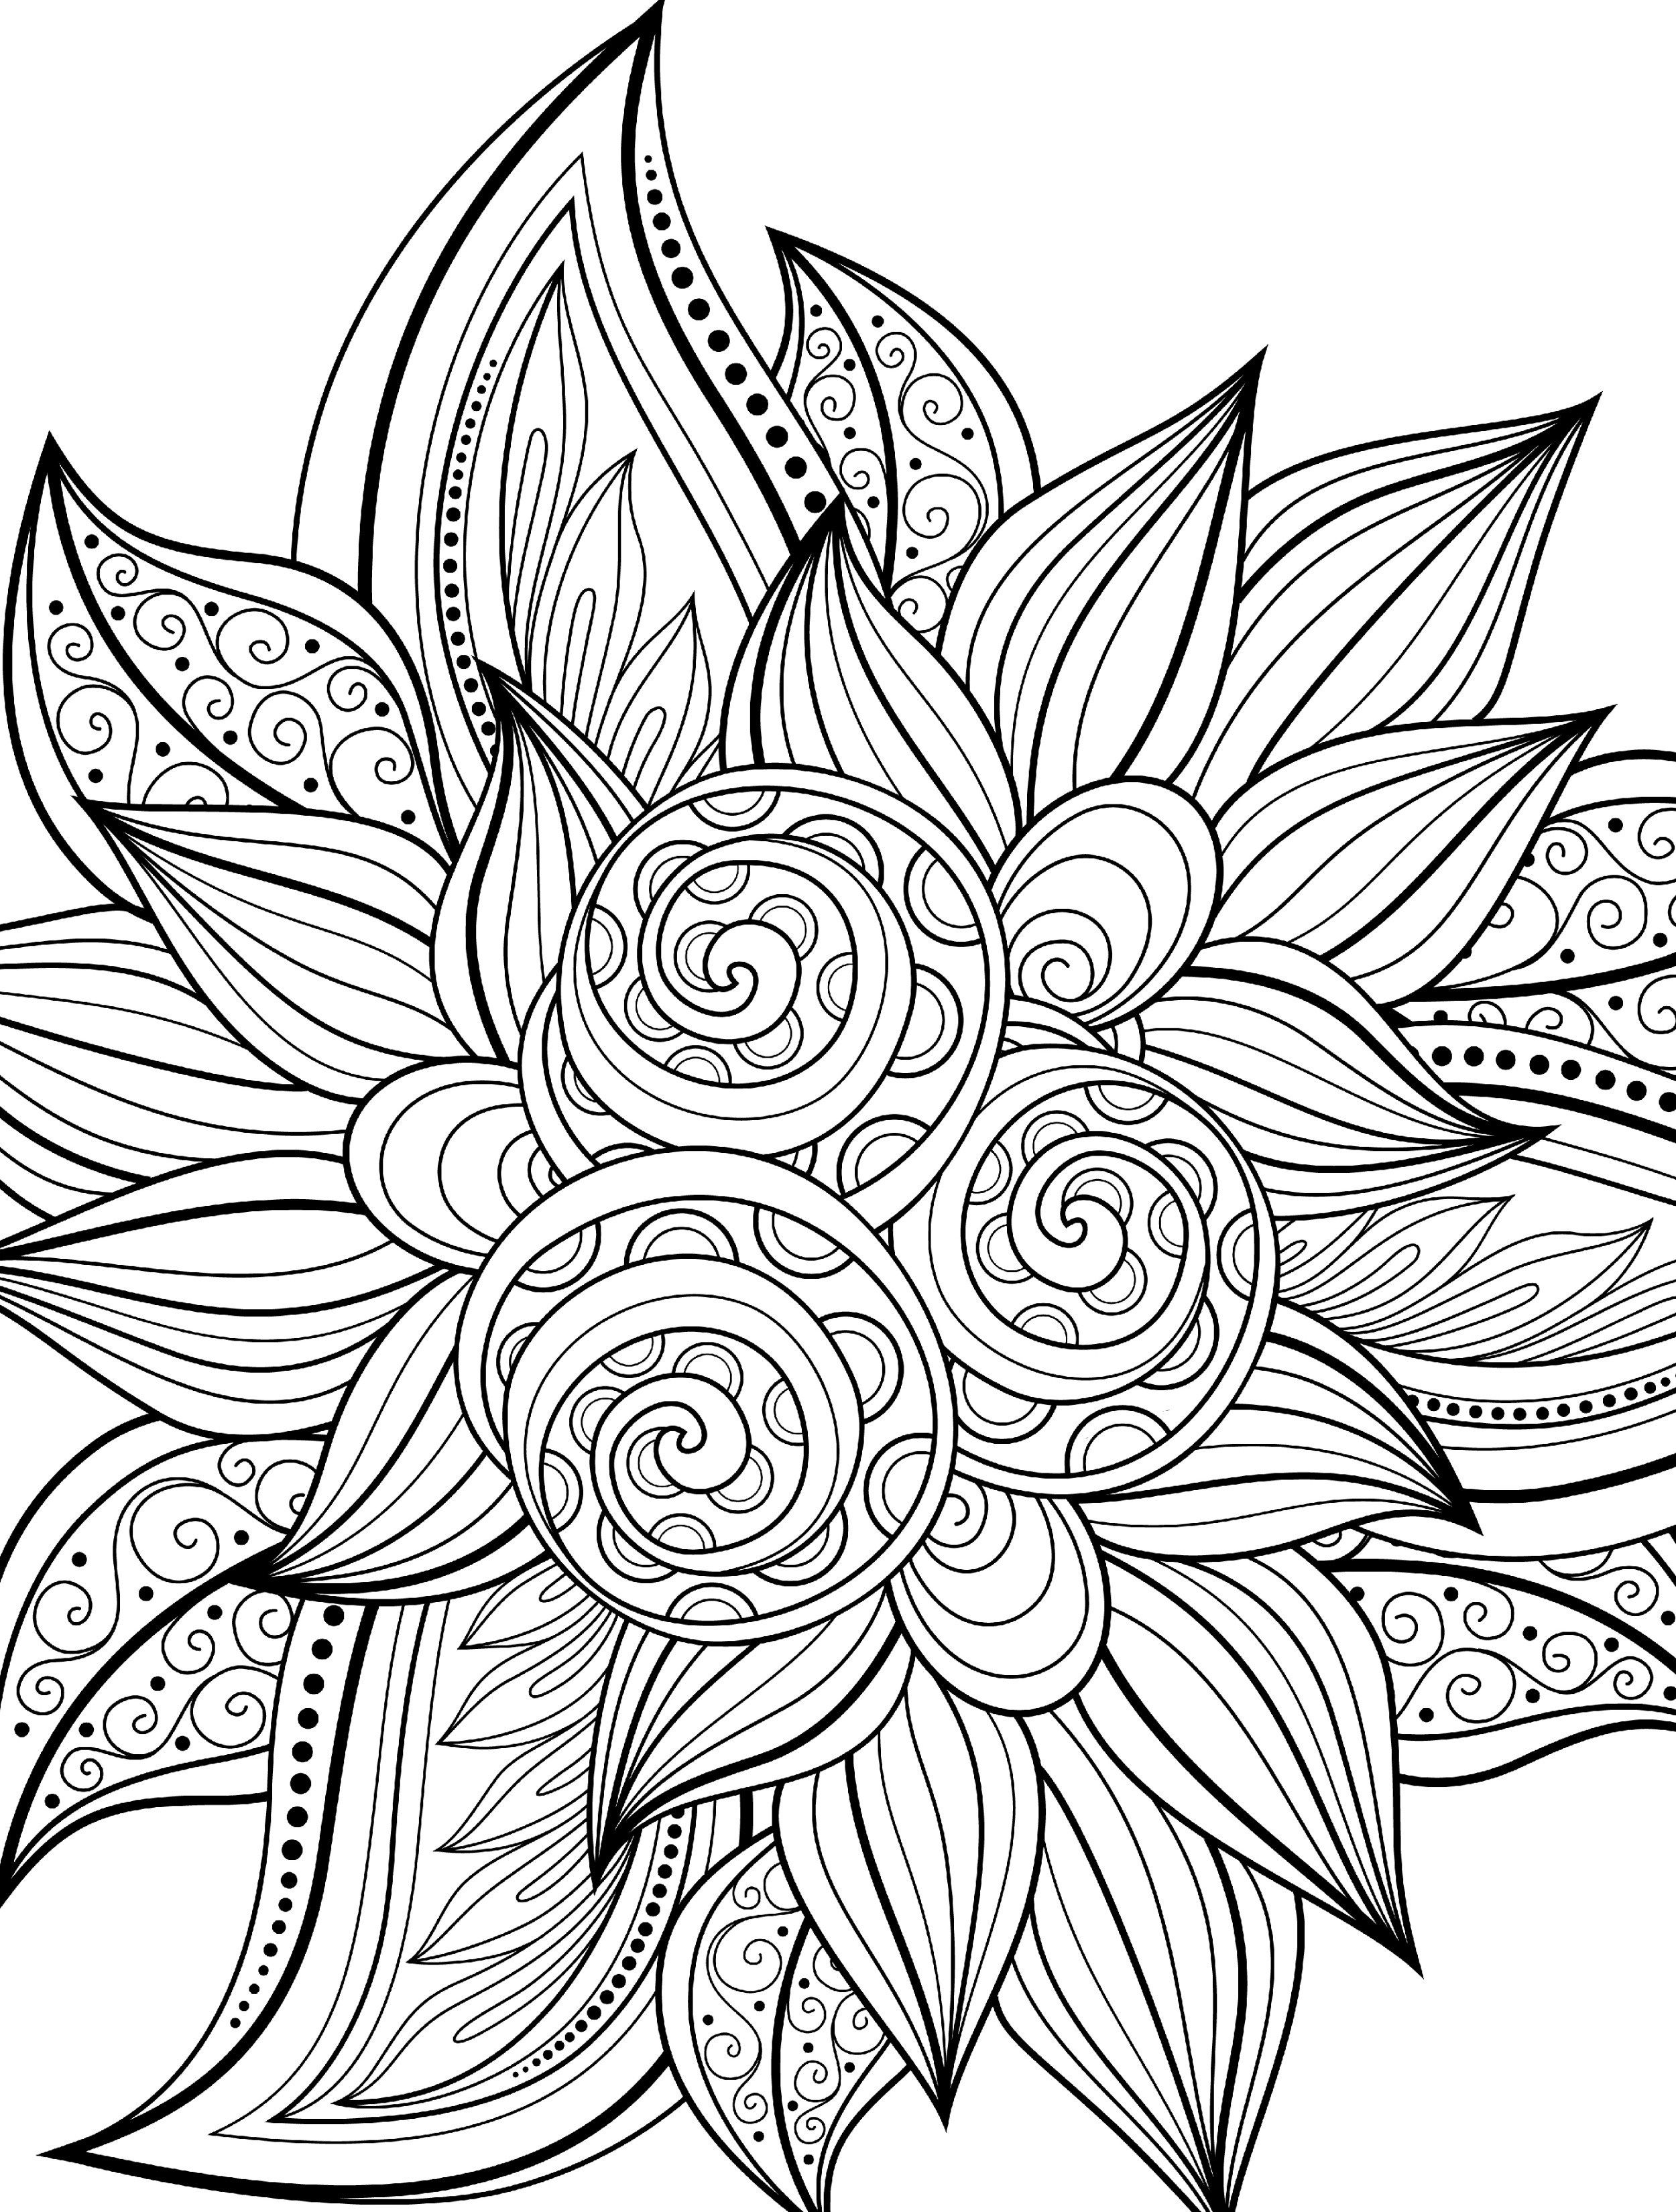 free printable coloring pages for adults zen : 10 Free Printable Holiday Adult Coloring Pages